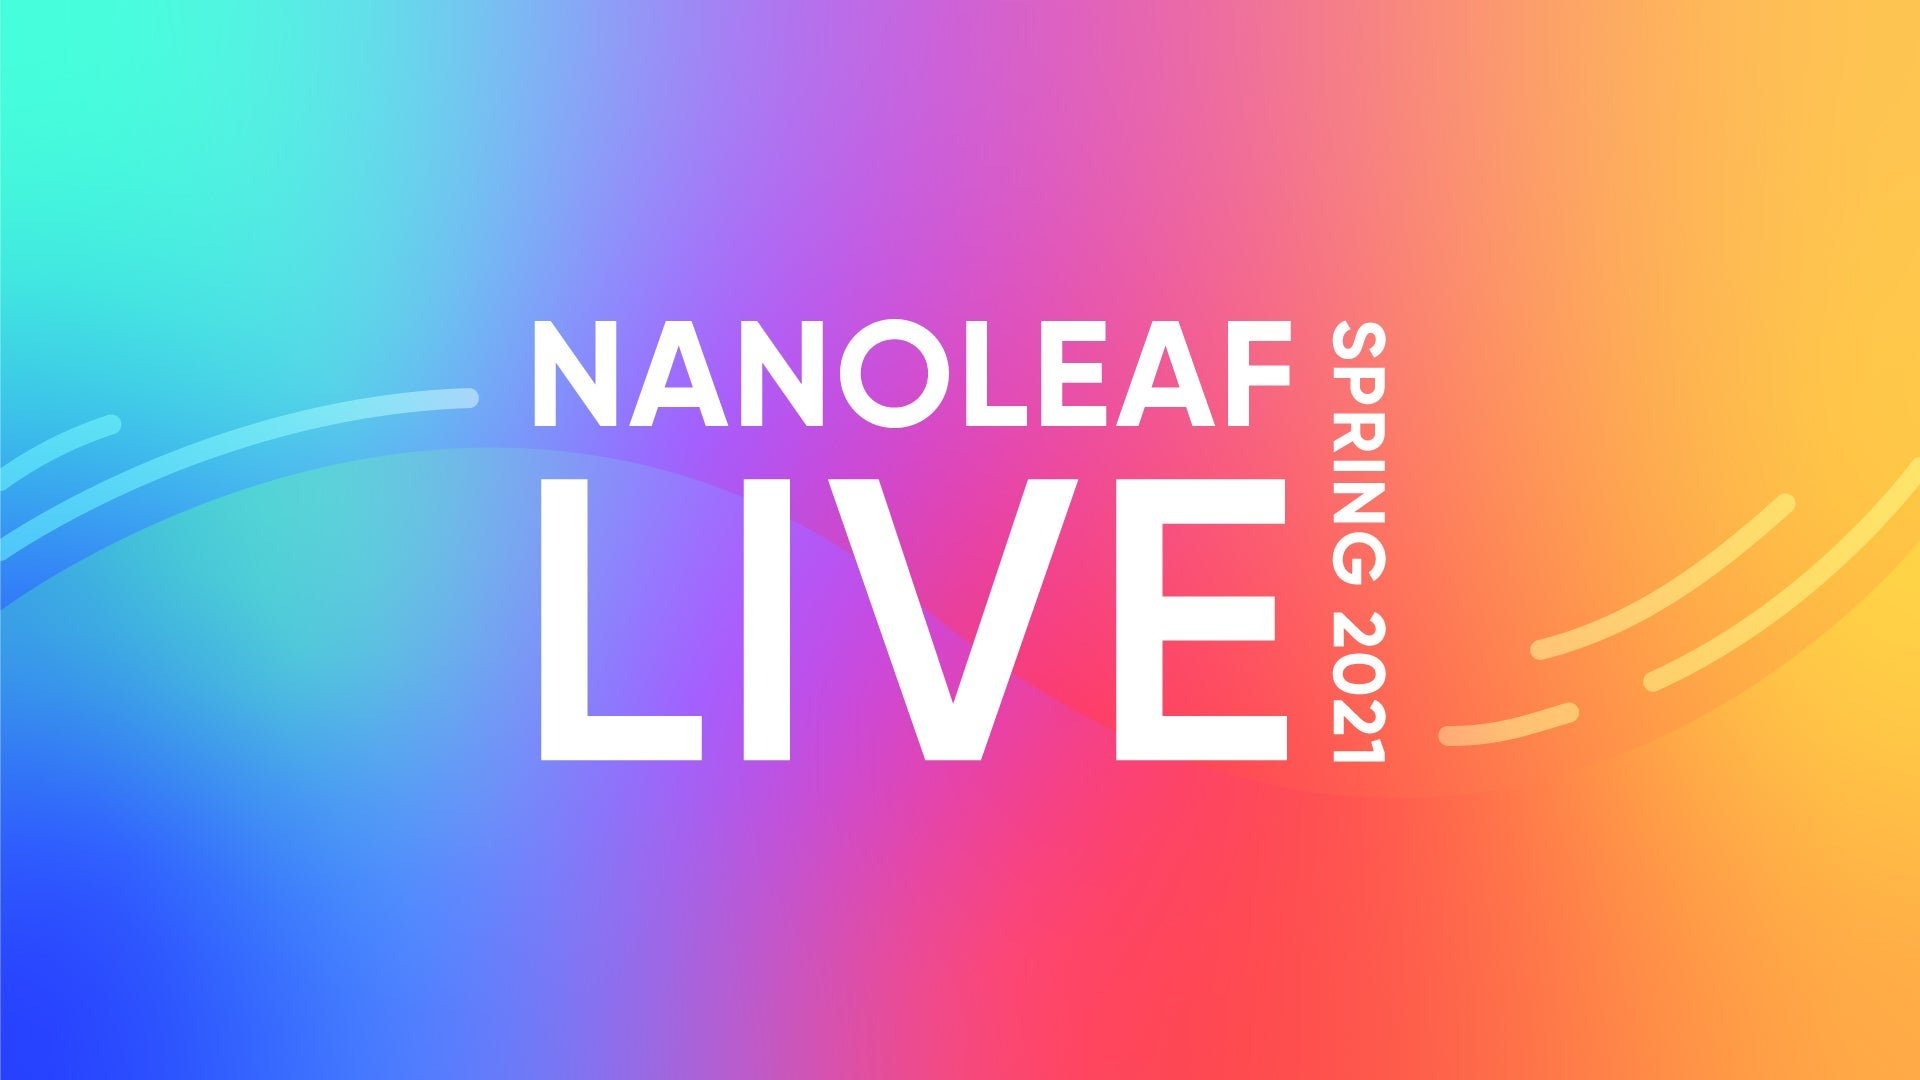 Nanoleaf Last year we launched our Shapes panels in